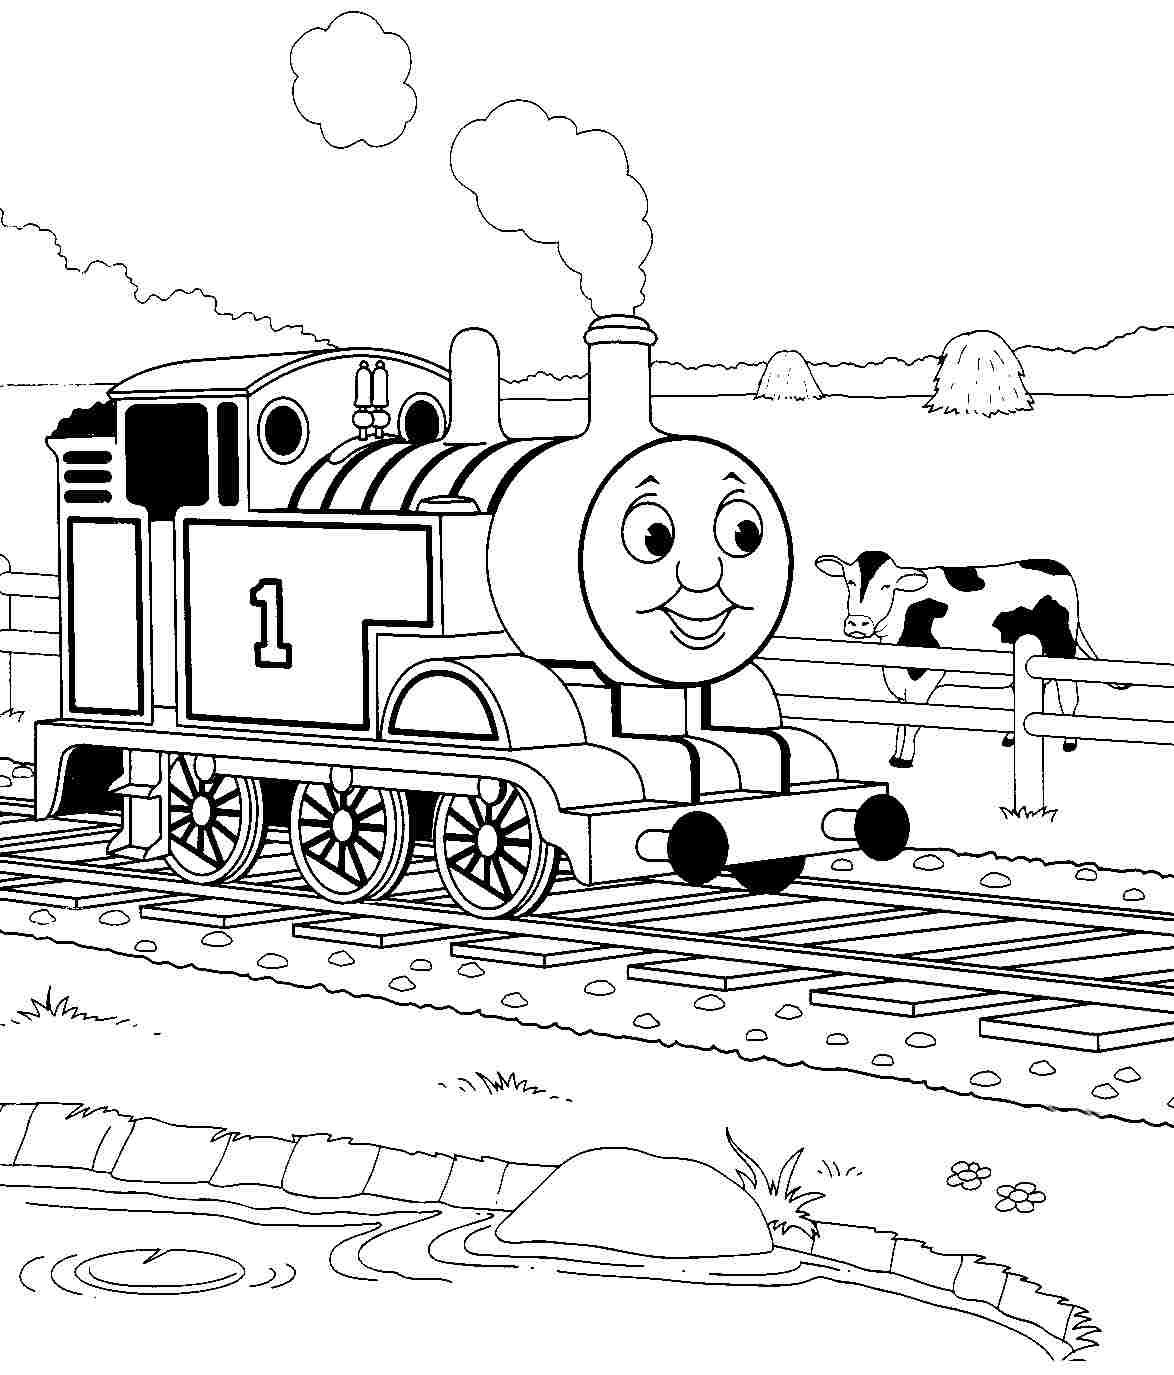 Thomas the train coloring sheets printable - Find This Pin And More On Thomas The Train By Wittlavm Free Printable Colouring